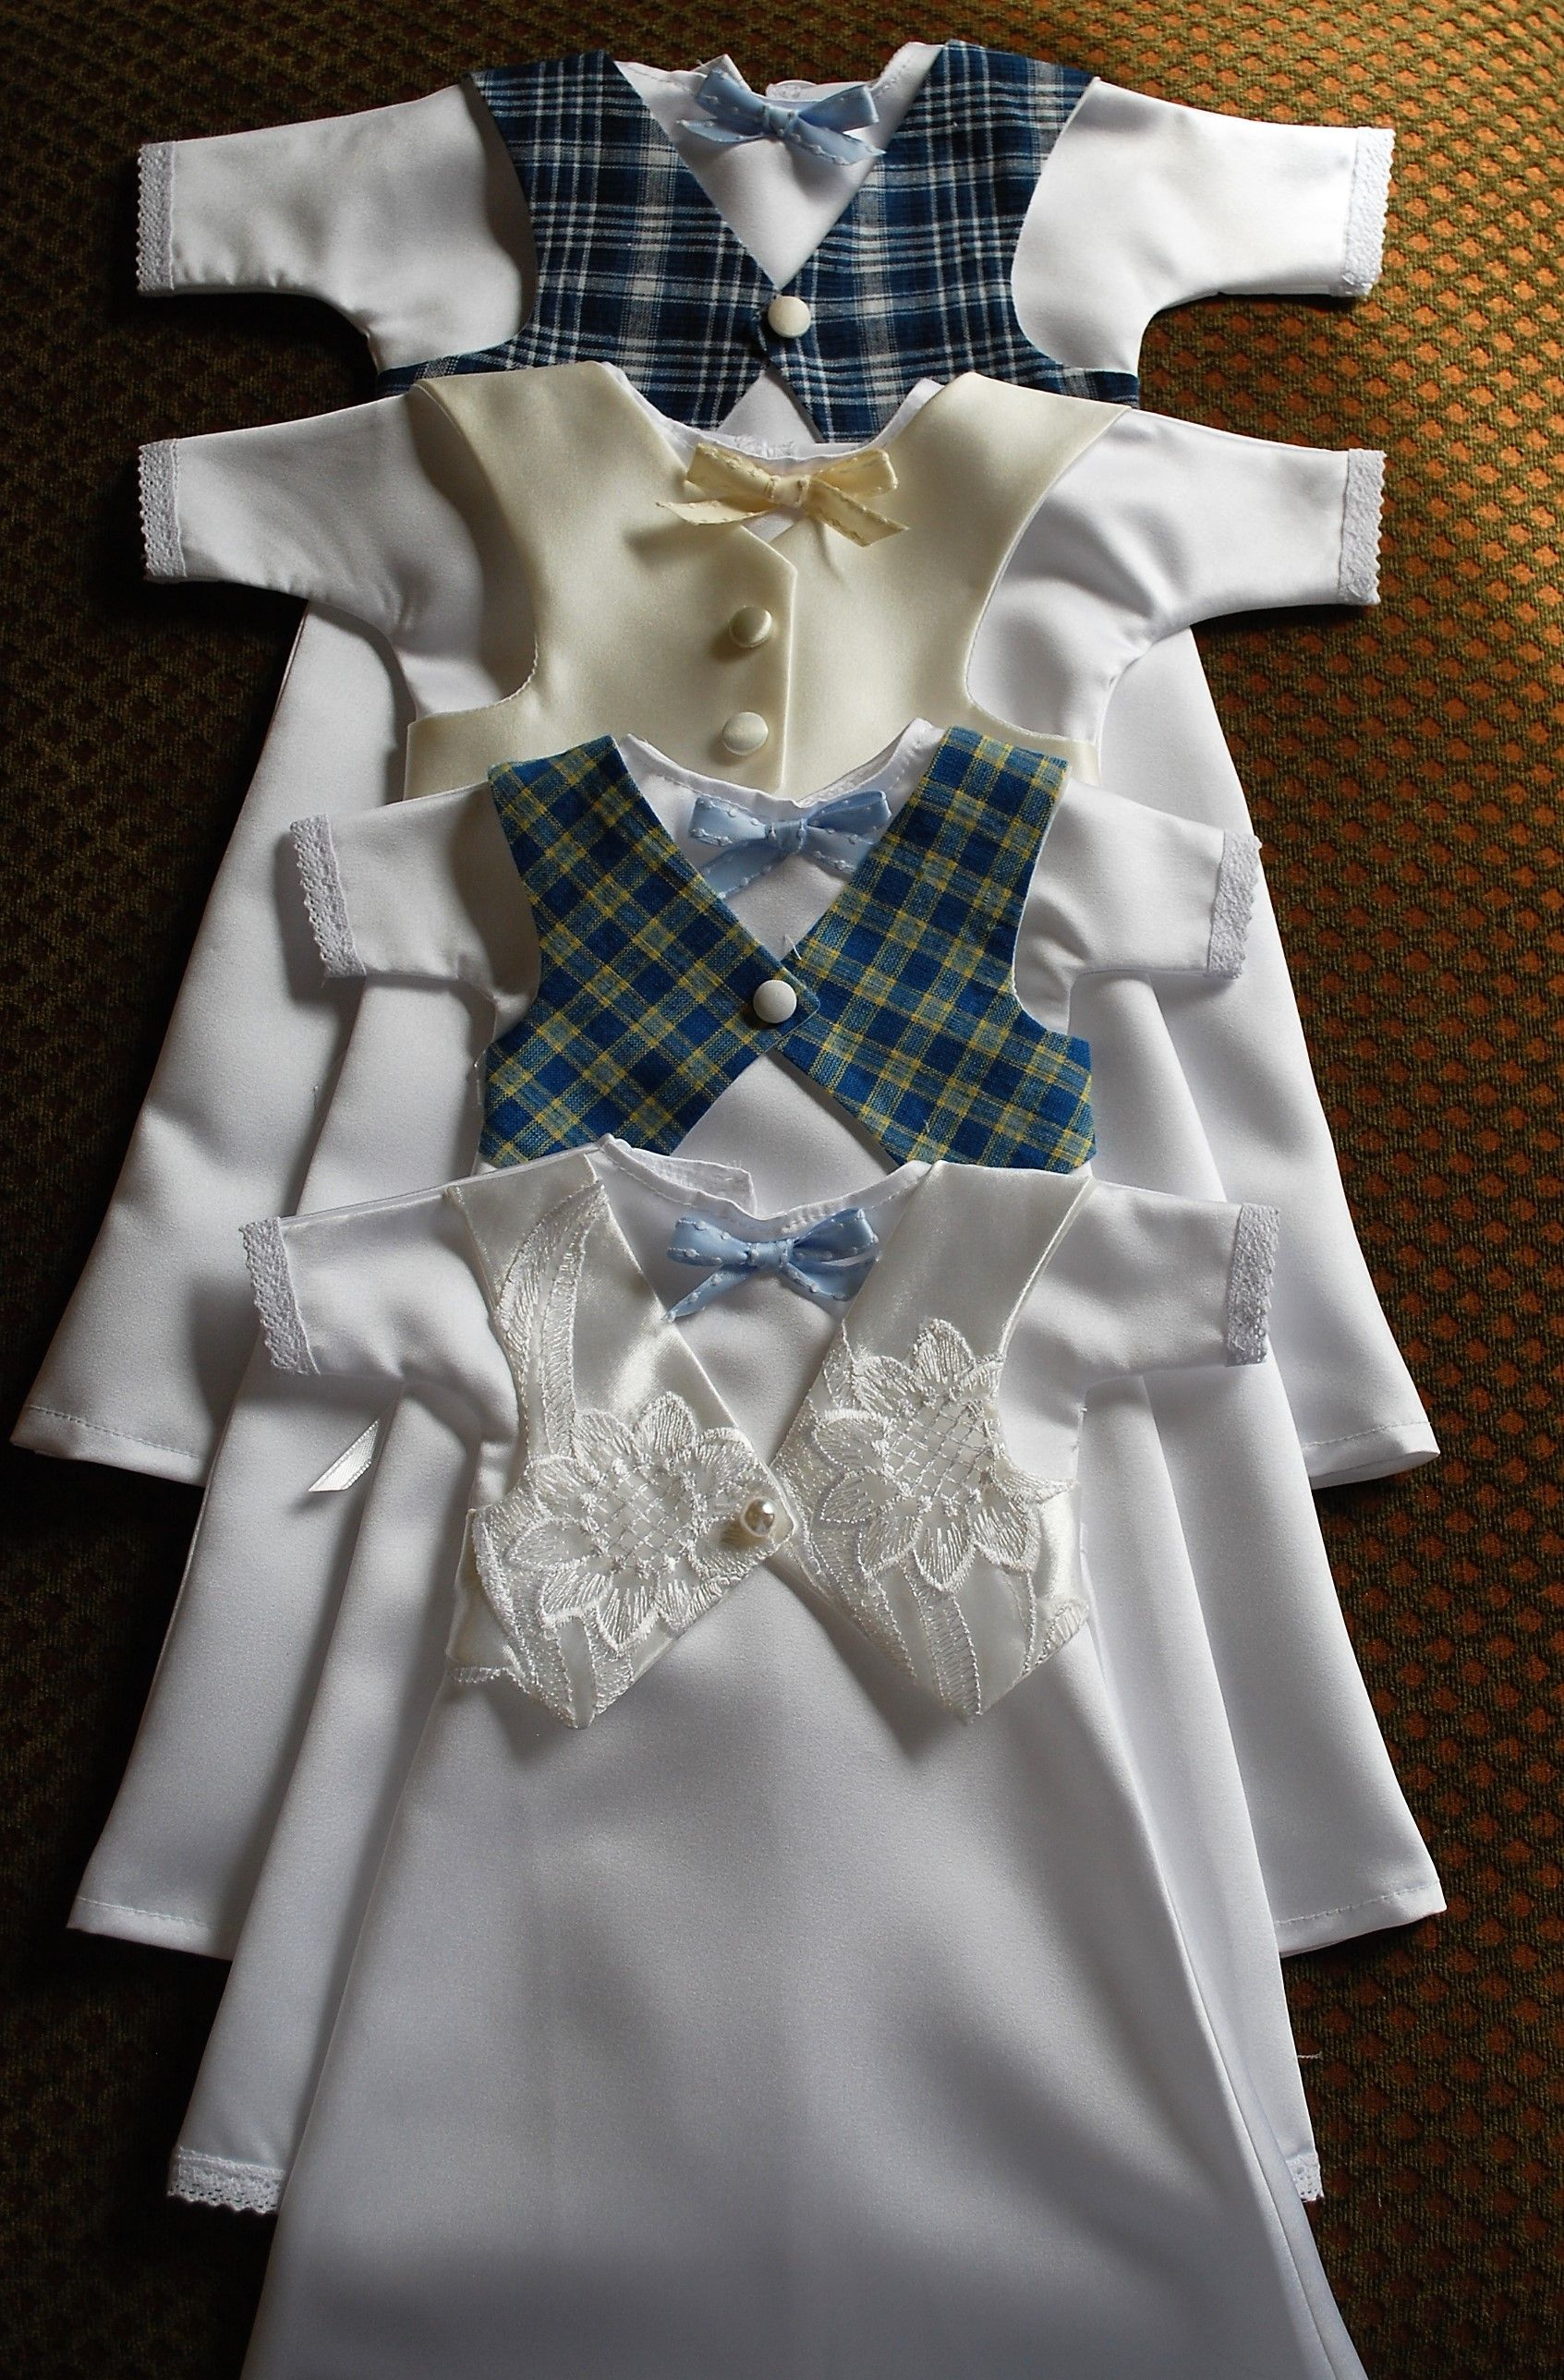 Boys angel gowns www.frontrangeangelgowns.com | Angel Gowns ~ Front ...